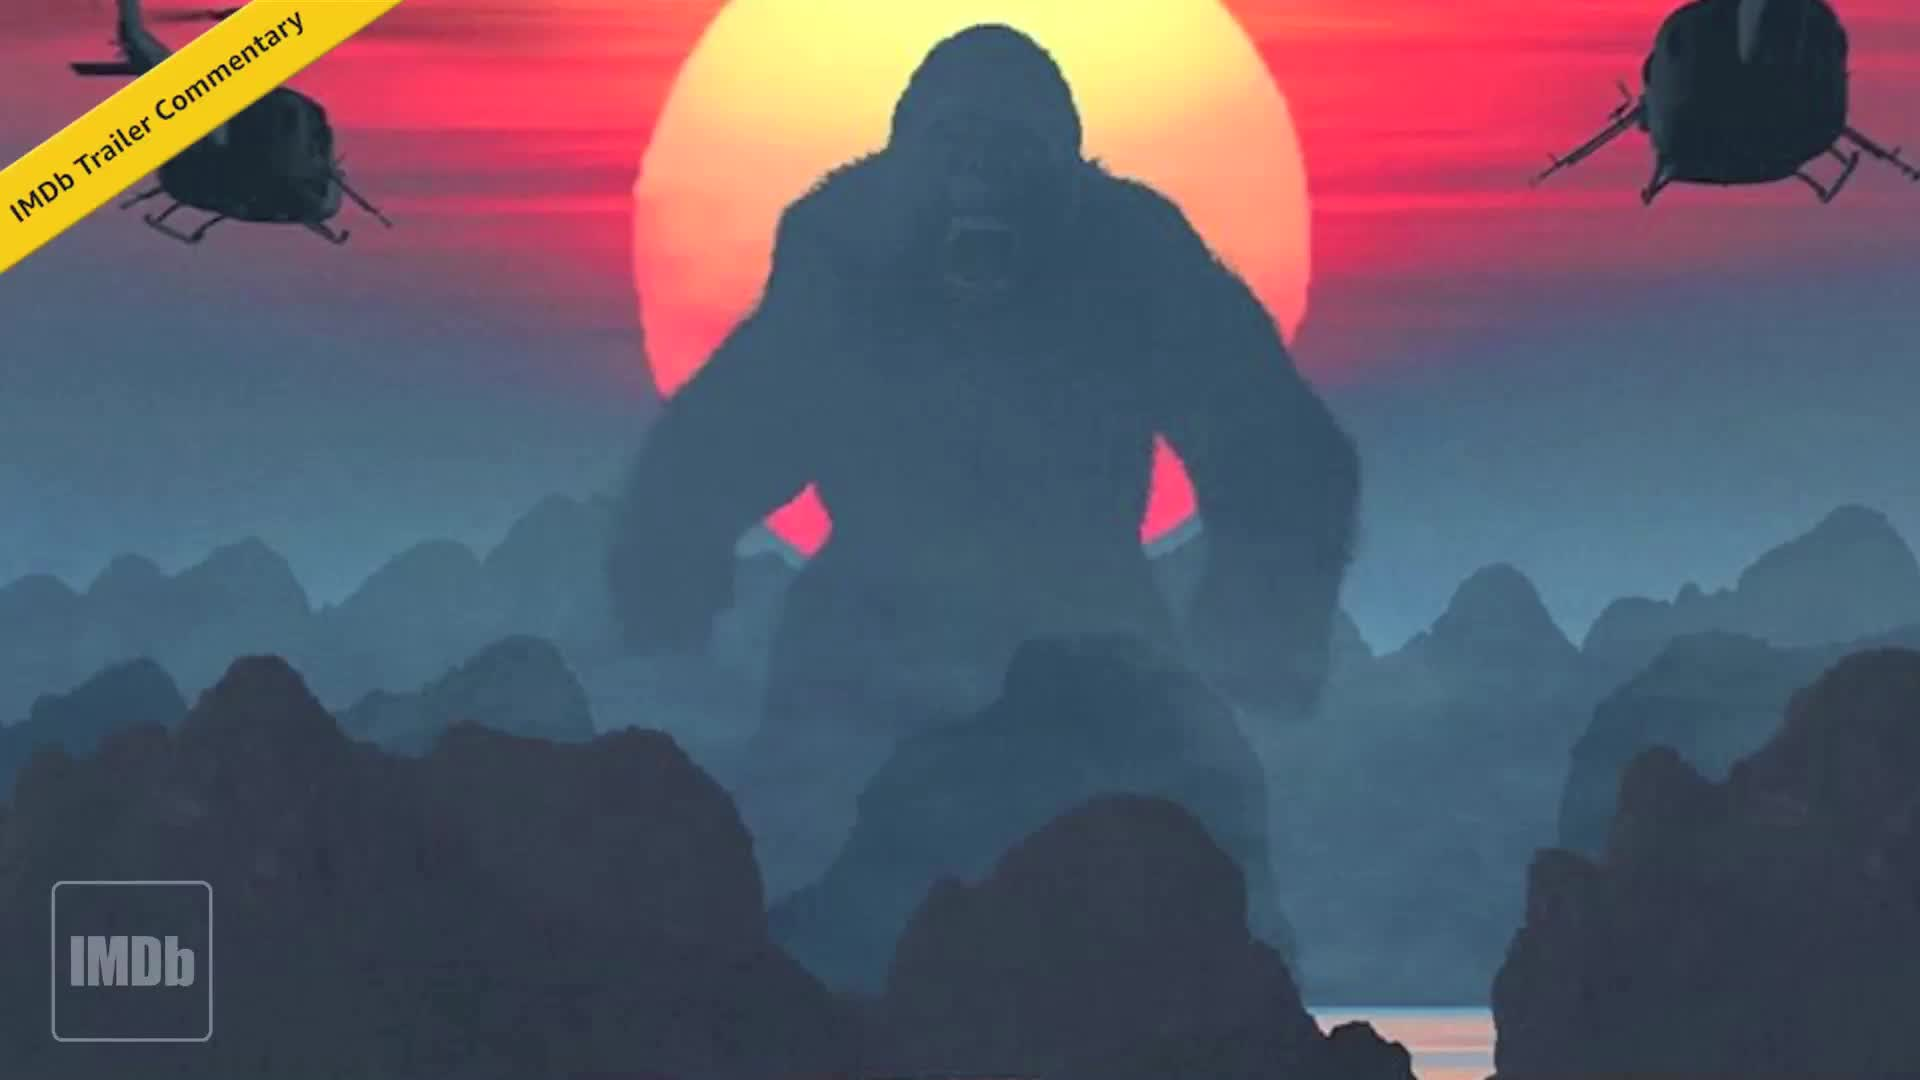 Kong: Skull Island full movie in italian 720p